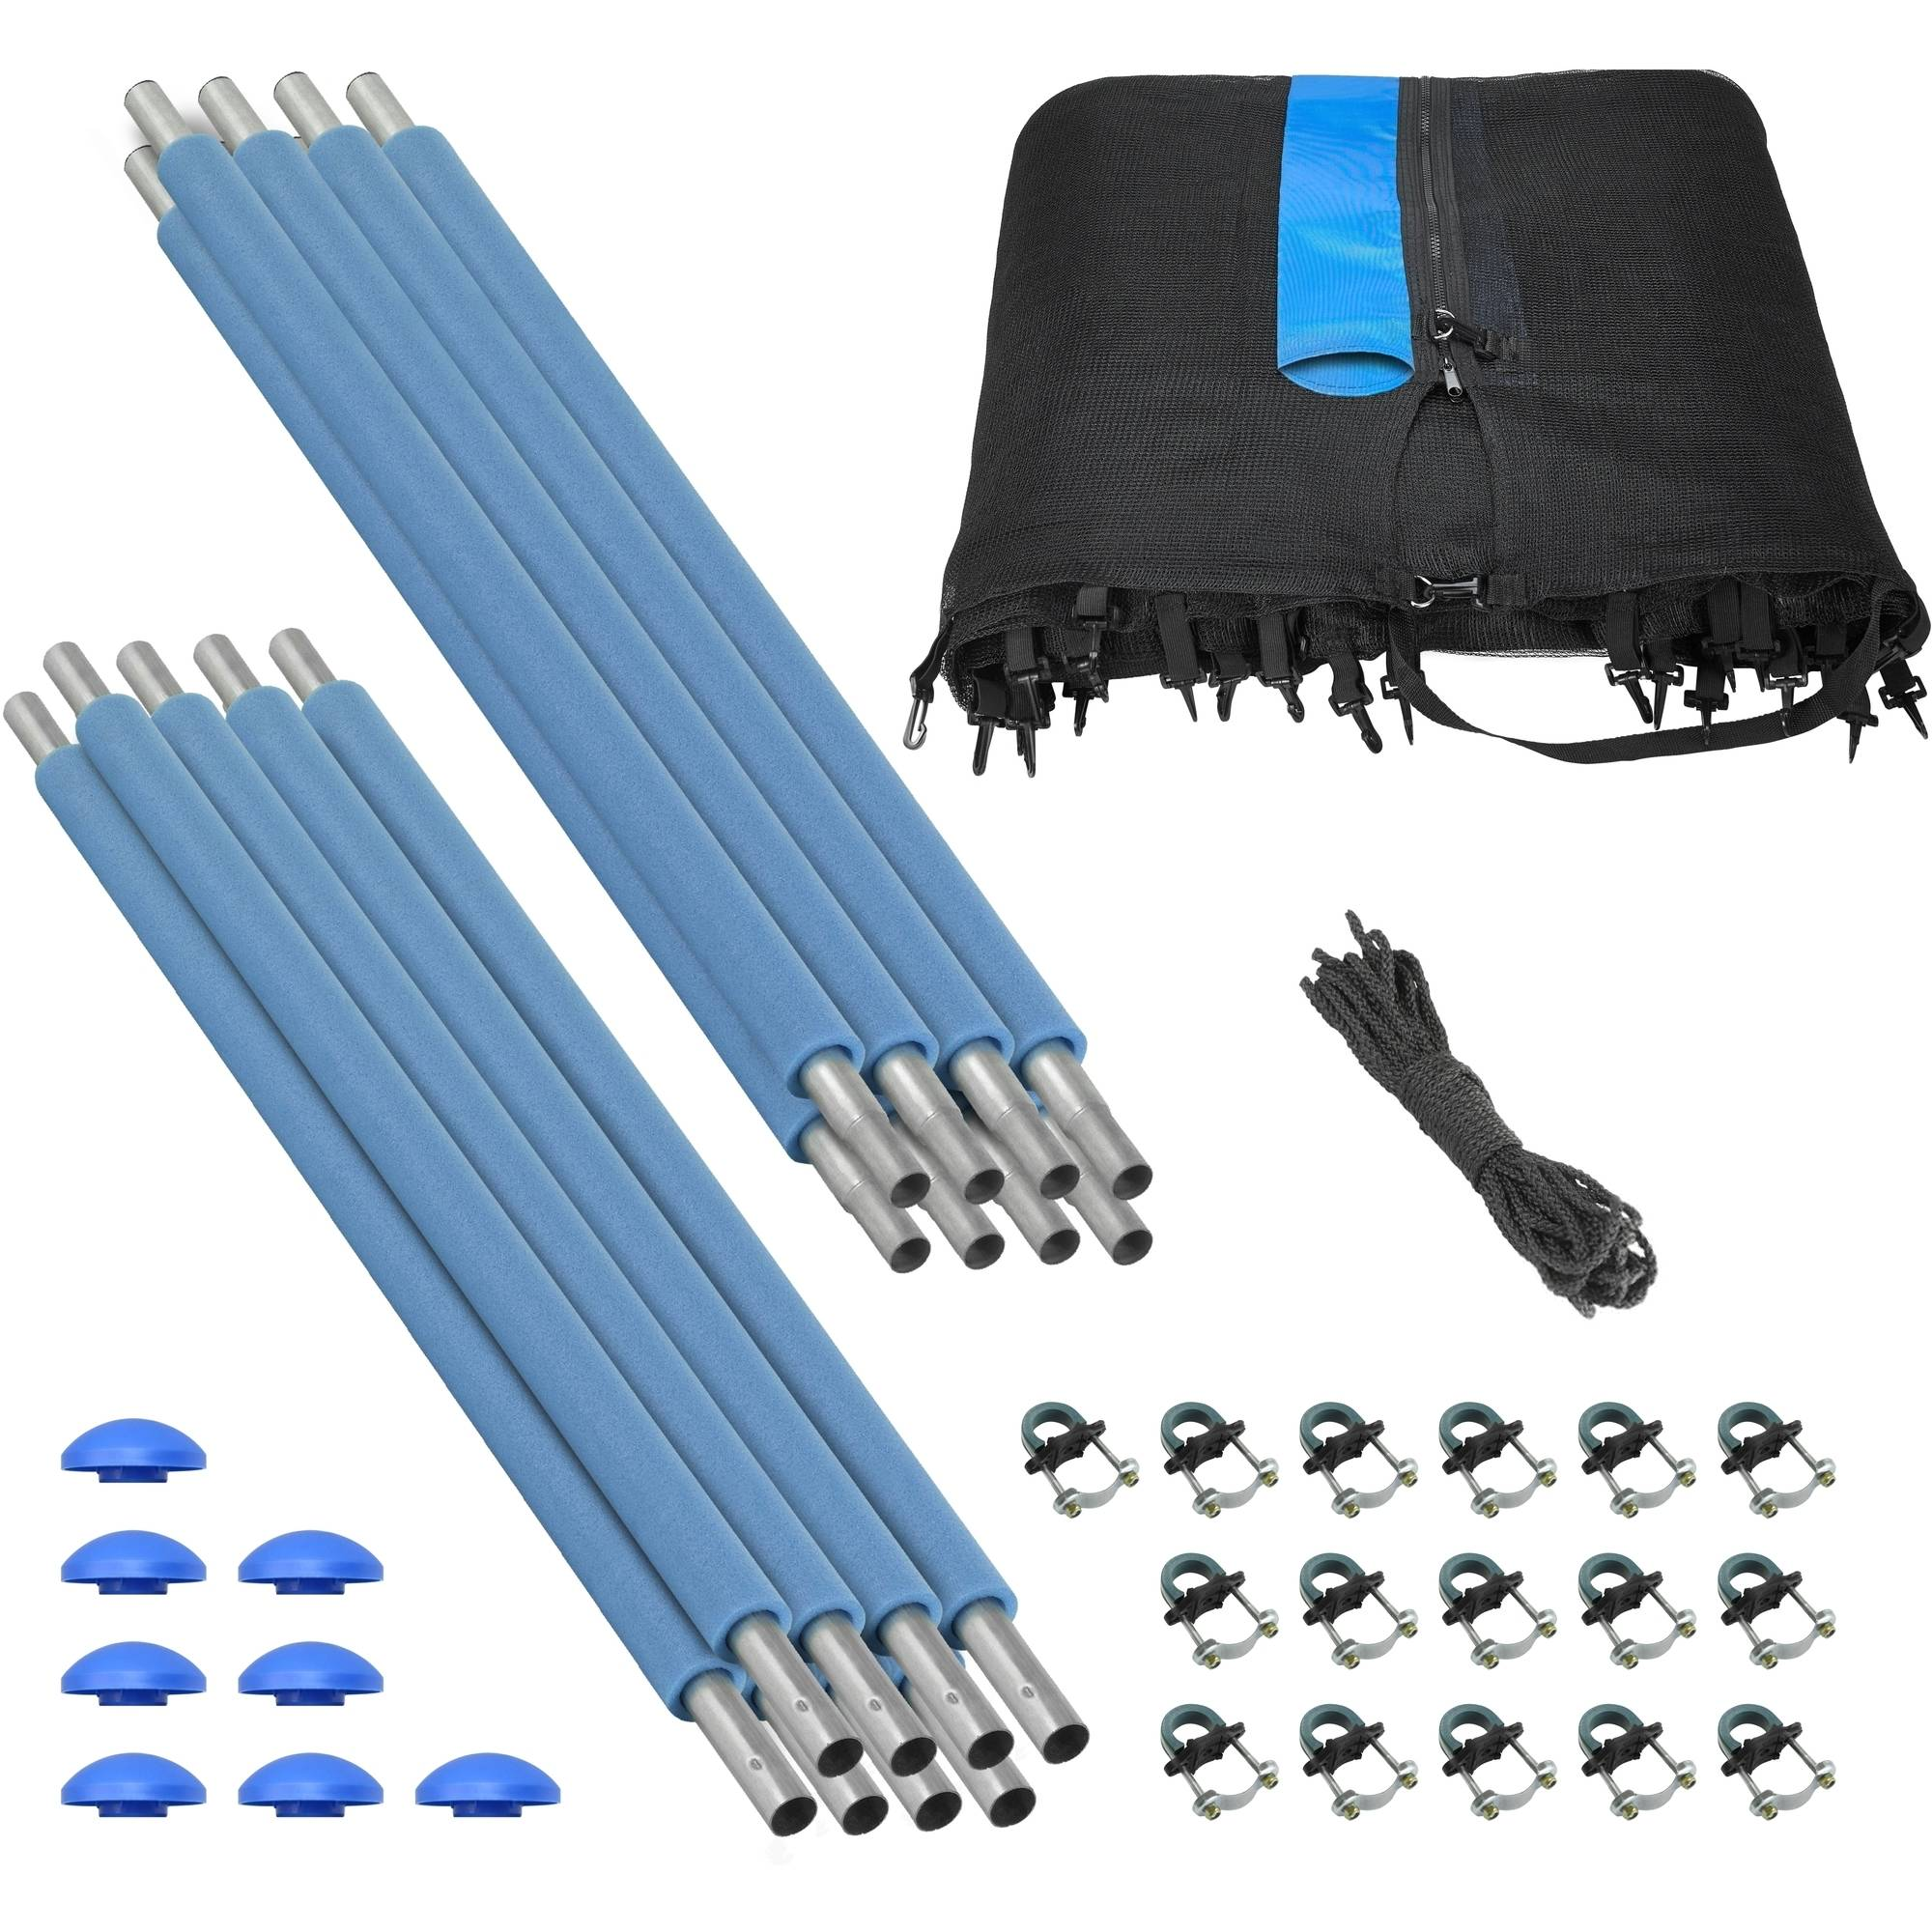 Trampoline Enclosure Set, to fit 10 FT. Round Frames, for 4 or 8 W-Shaped Legs -Set Includes: Net, Poles & Hardware Only